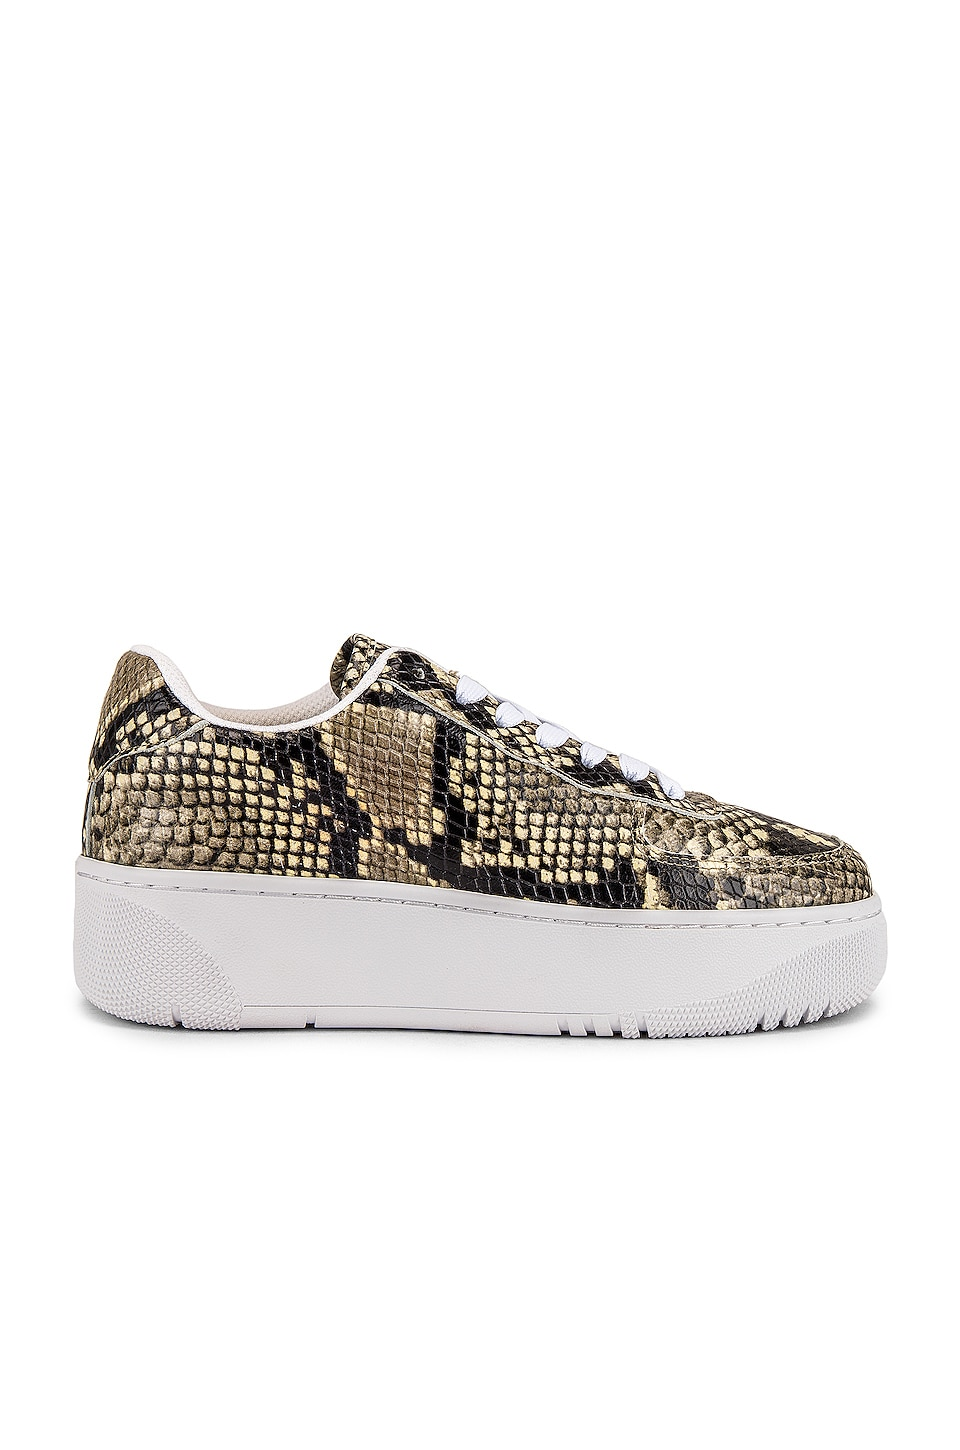 Jeffrey Campbell Court Sneaker in Brown Snake